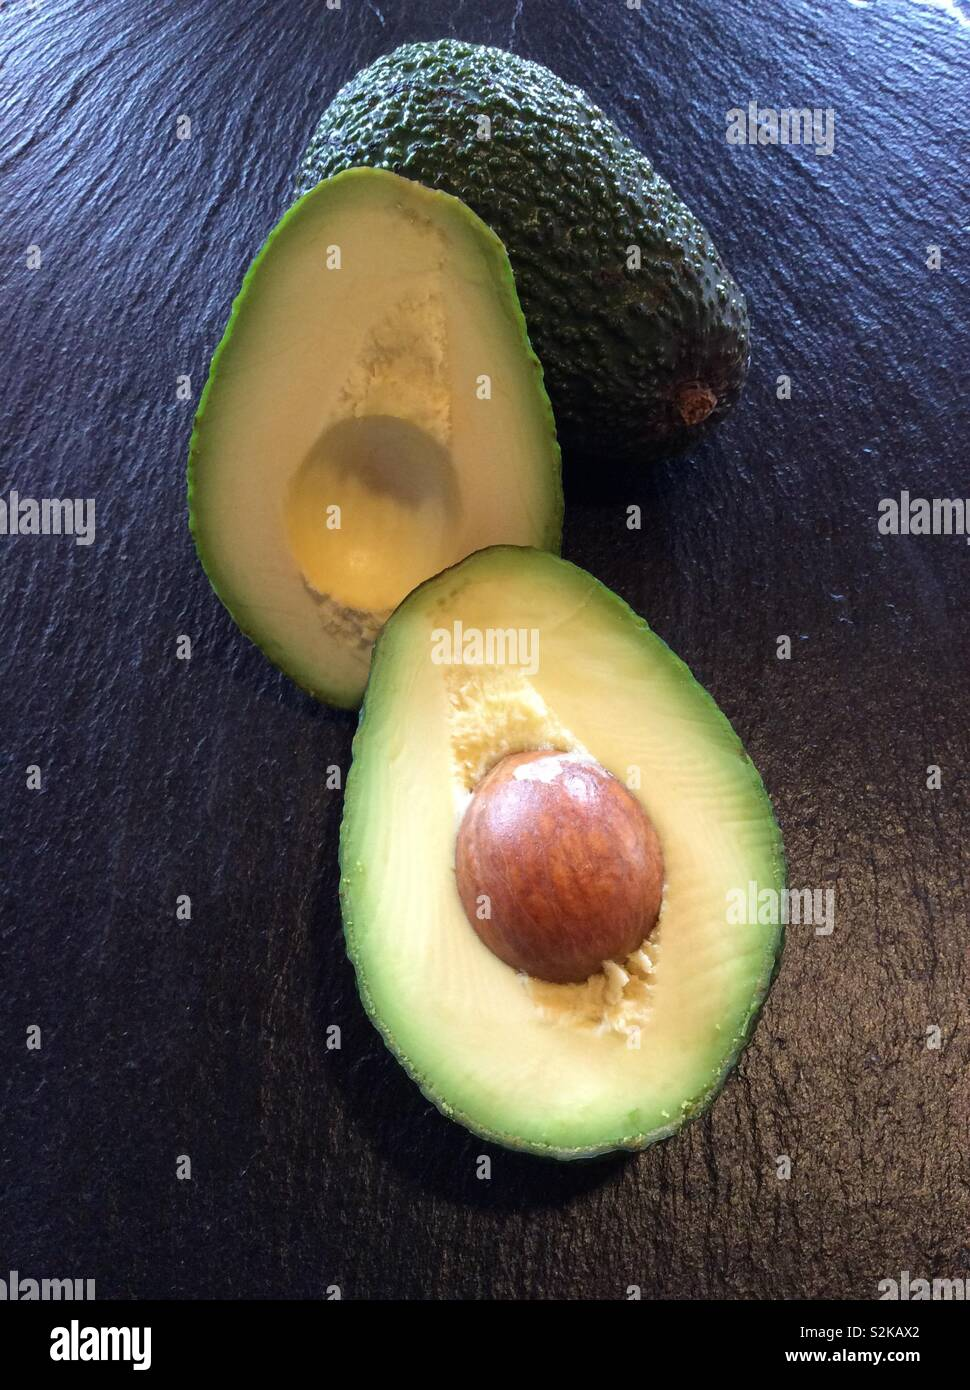 Avocado on black stone background, source of omega 3 from natural food - Stock Image